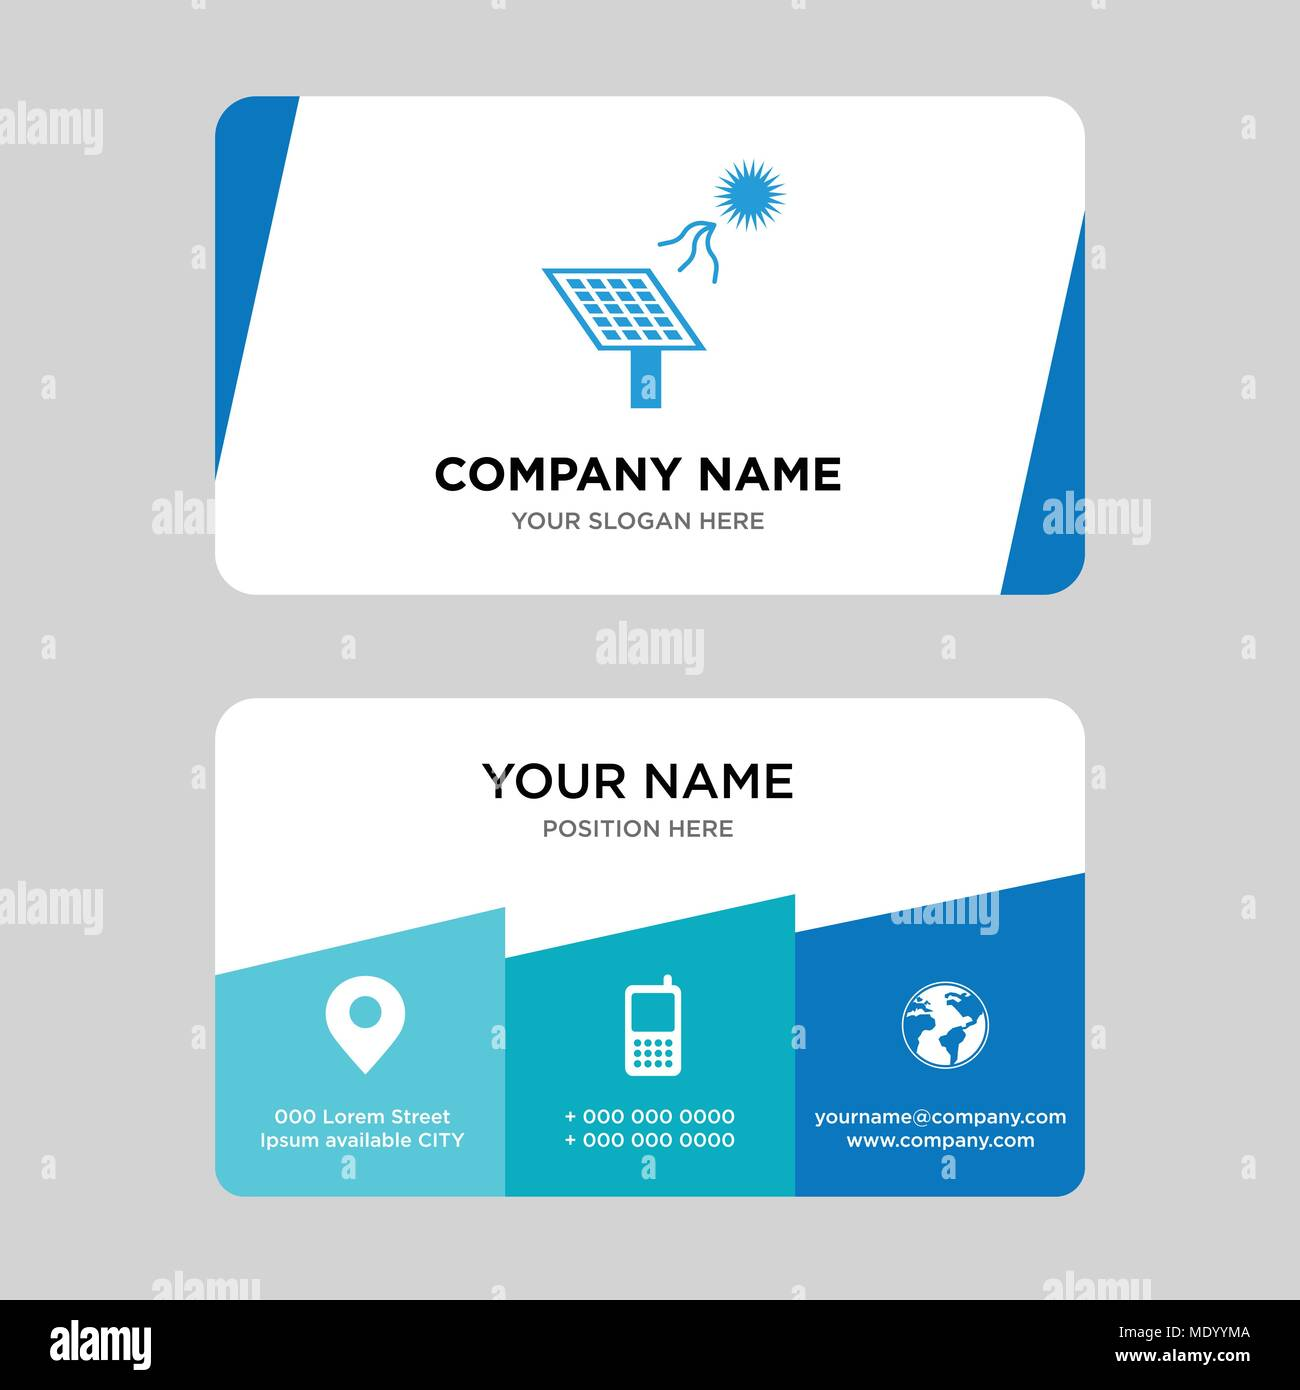 Solar battery business card design template visiting for your solar battery business card design template visiting for your company modern creative and clean identity card vector illustration wajeb Choice Image